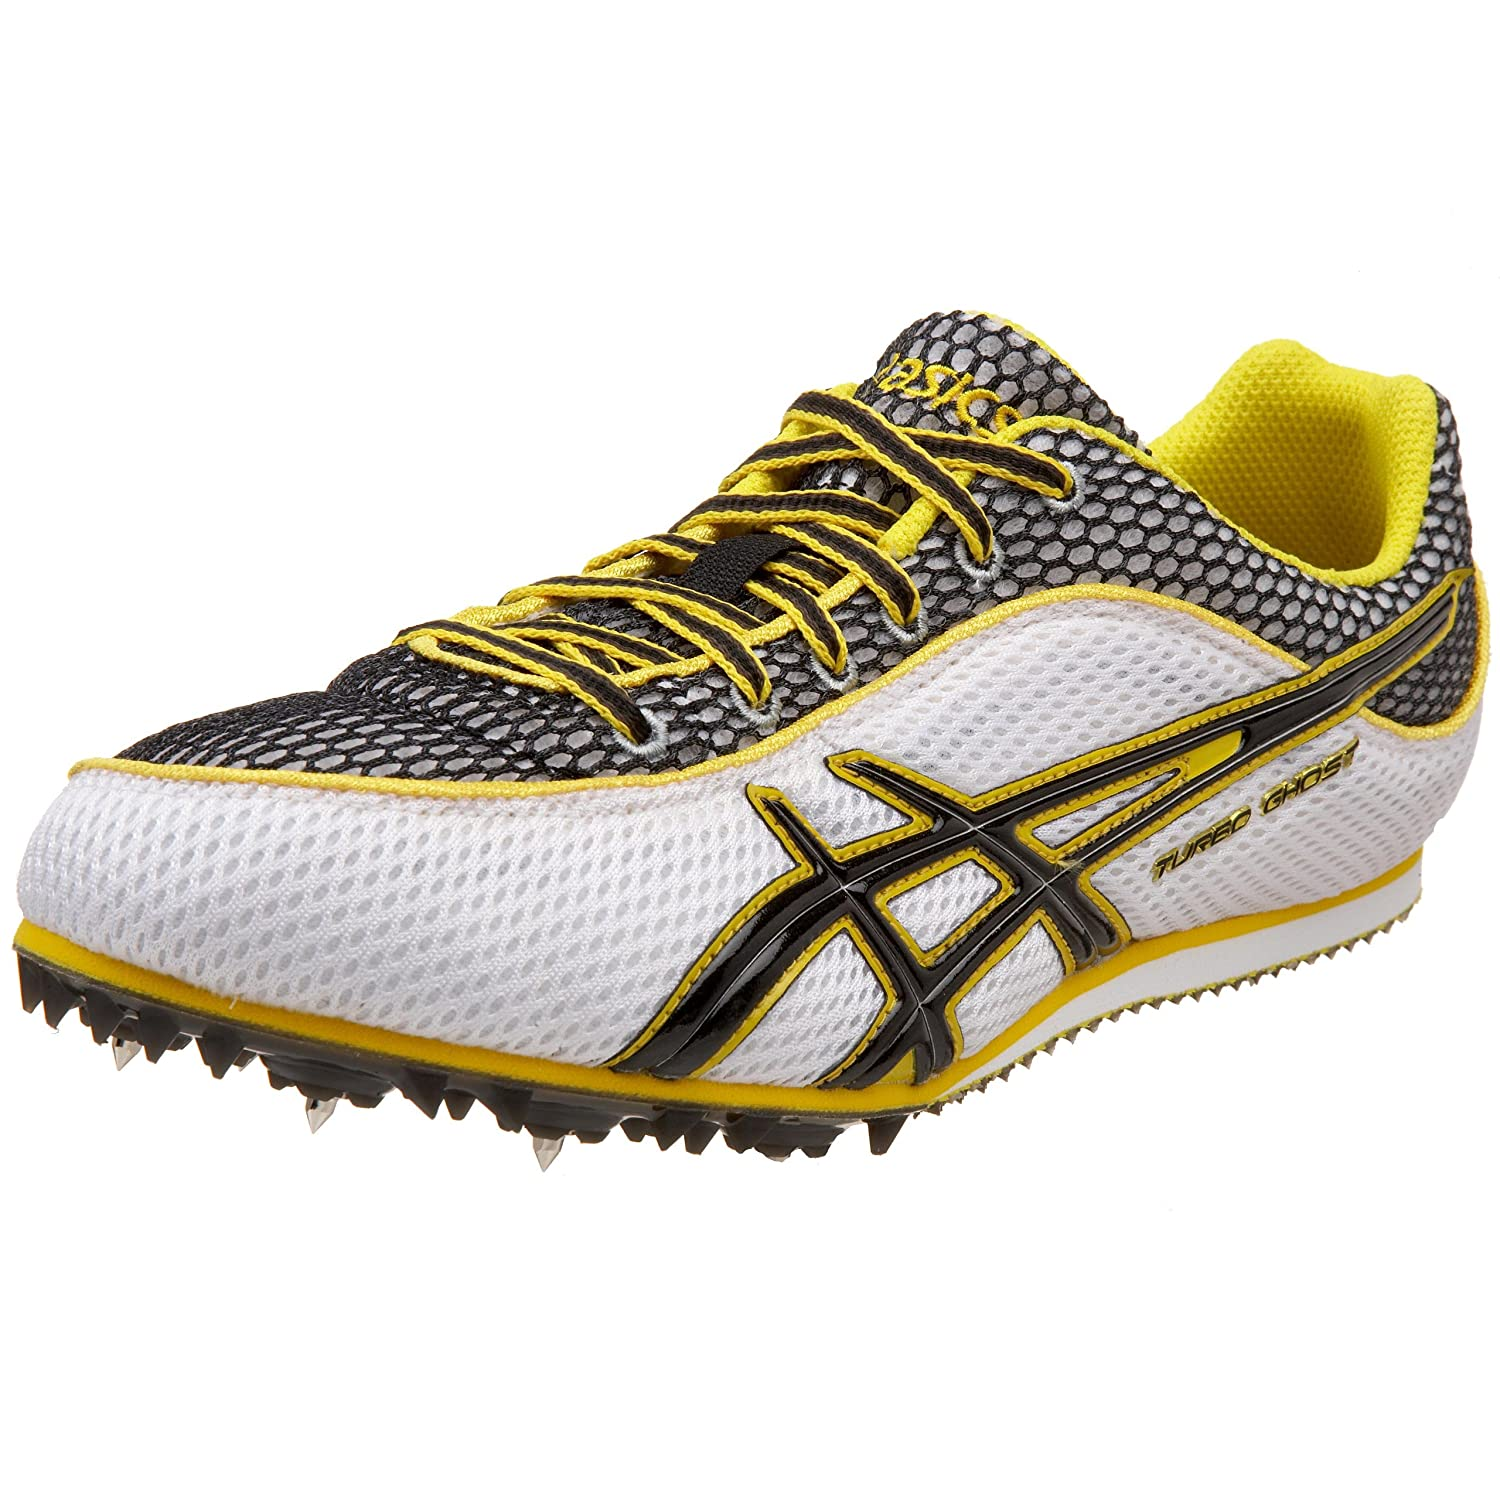 ASICS Men's Turbo Ghost 3 Track and Field Shoe